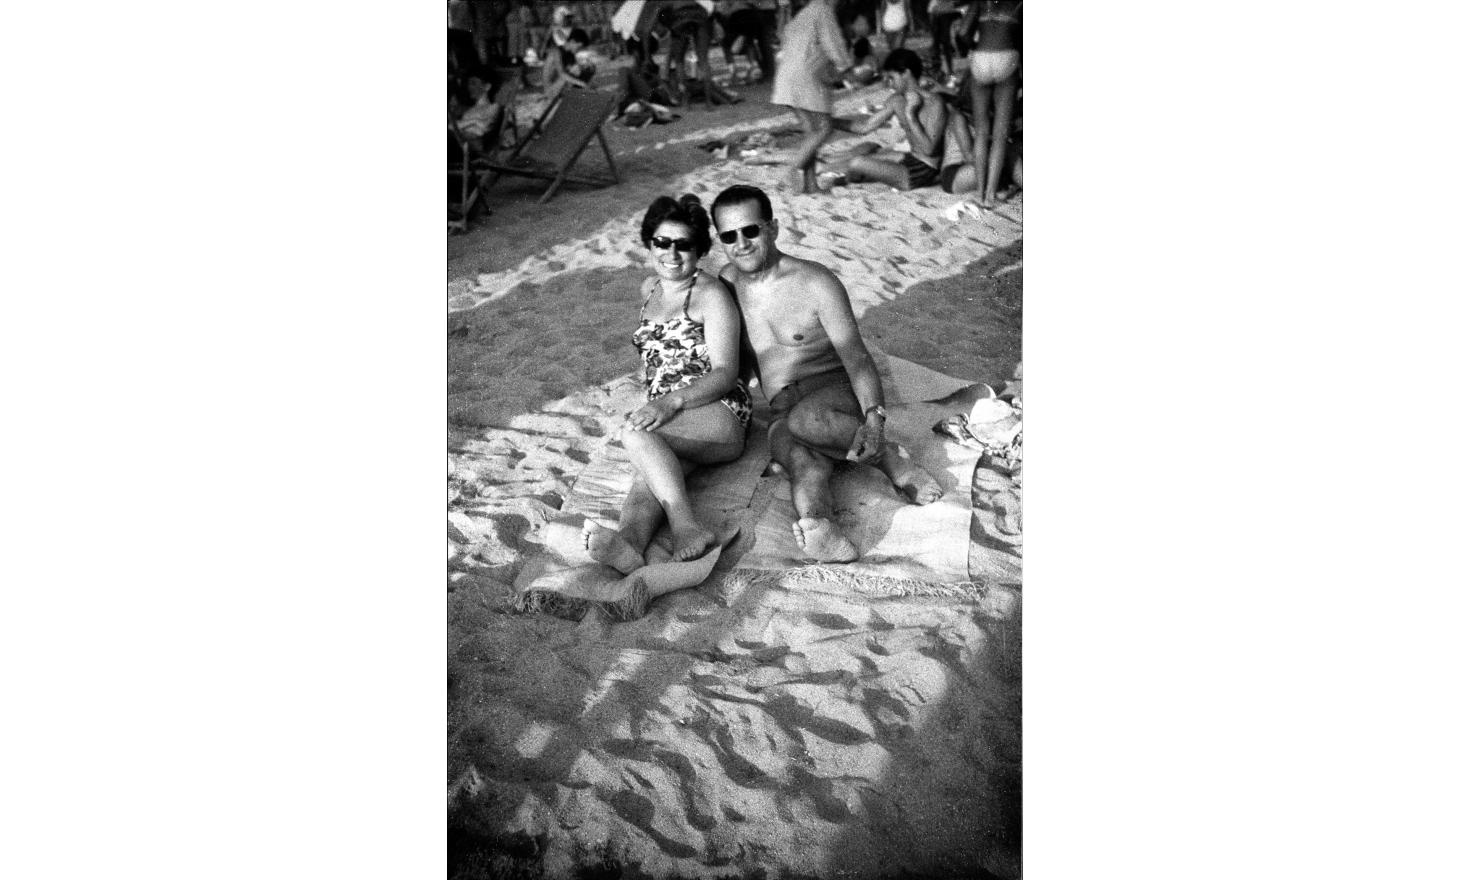 My parents on the beach. They were not getting along, shouting at each other very often. Cannes,august 1962.